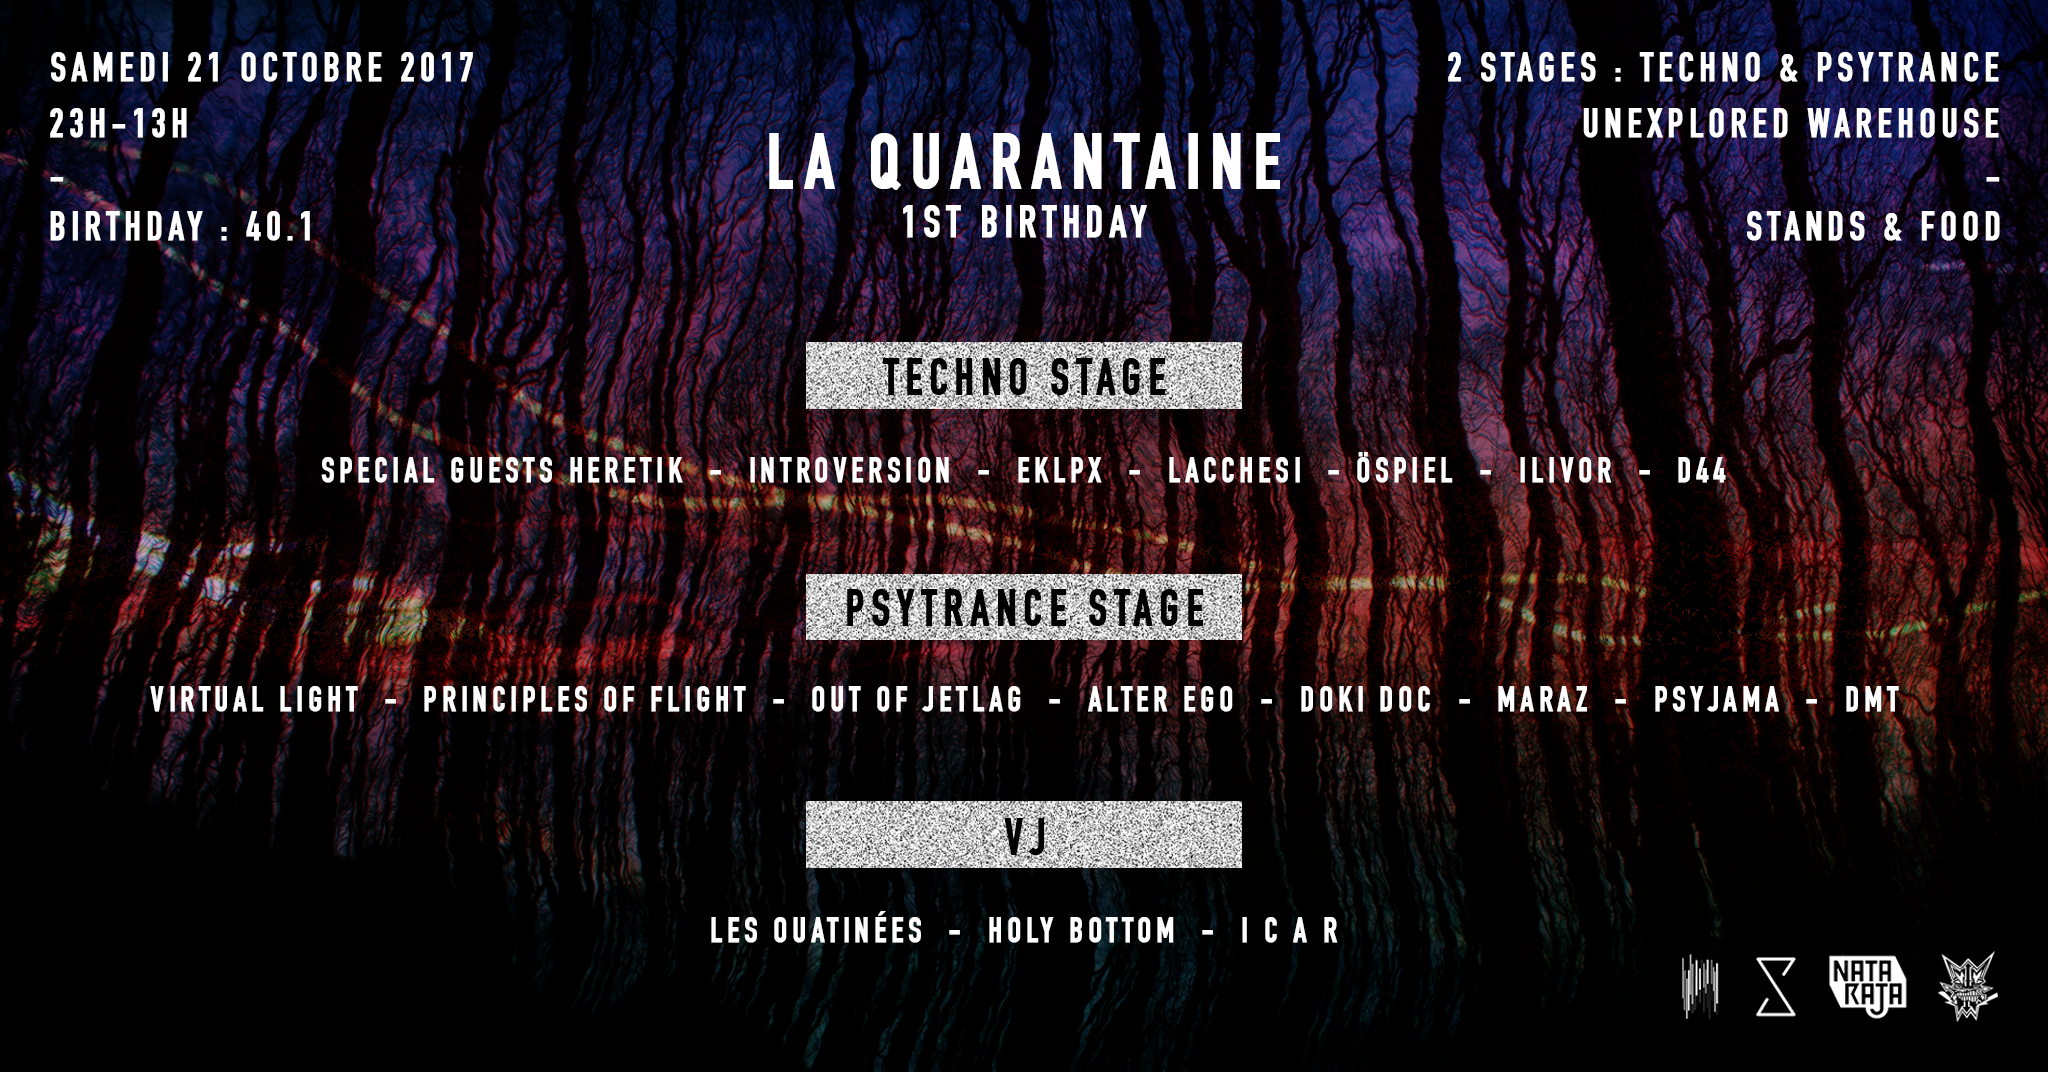 En Quarantaine #4 : 1st Birthday [SOLD OUT]